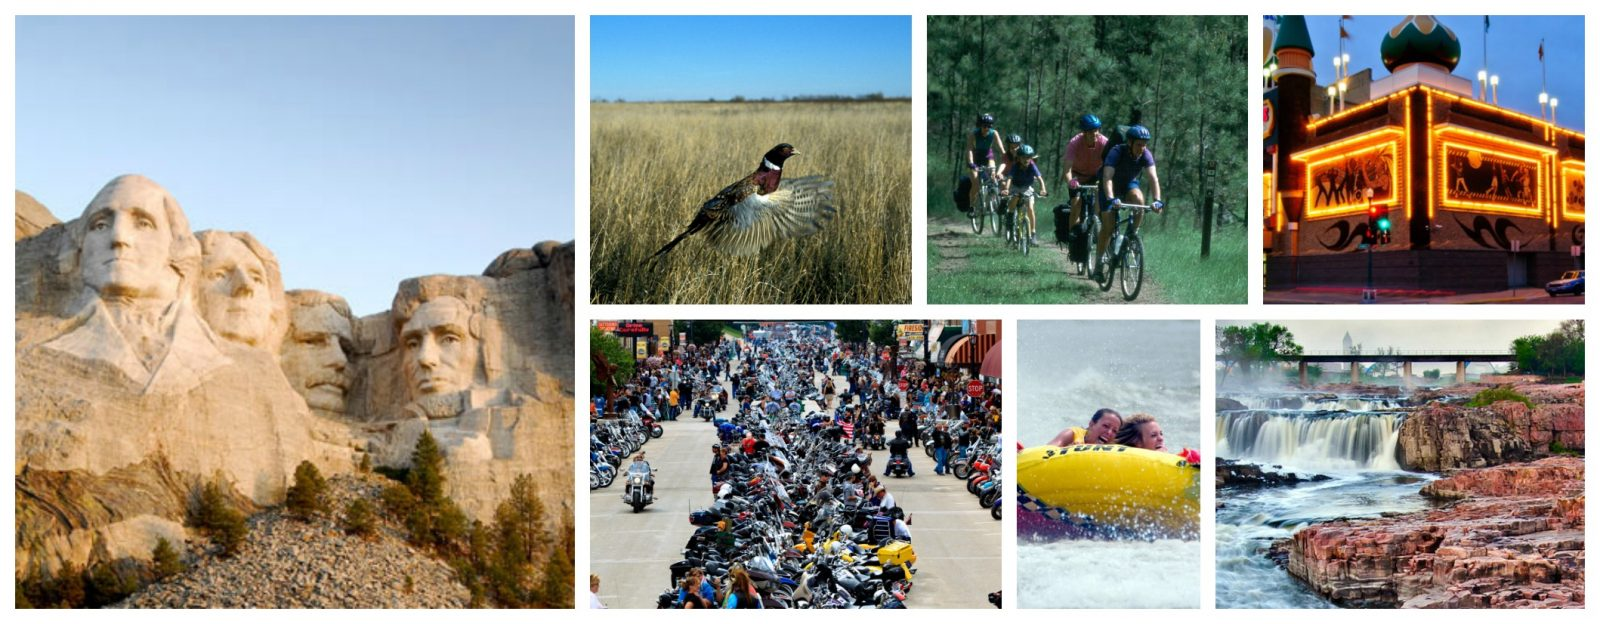 South Dakota tourism introduction for your camping or RVing vacation trip